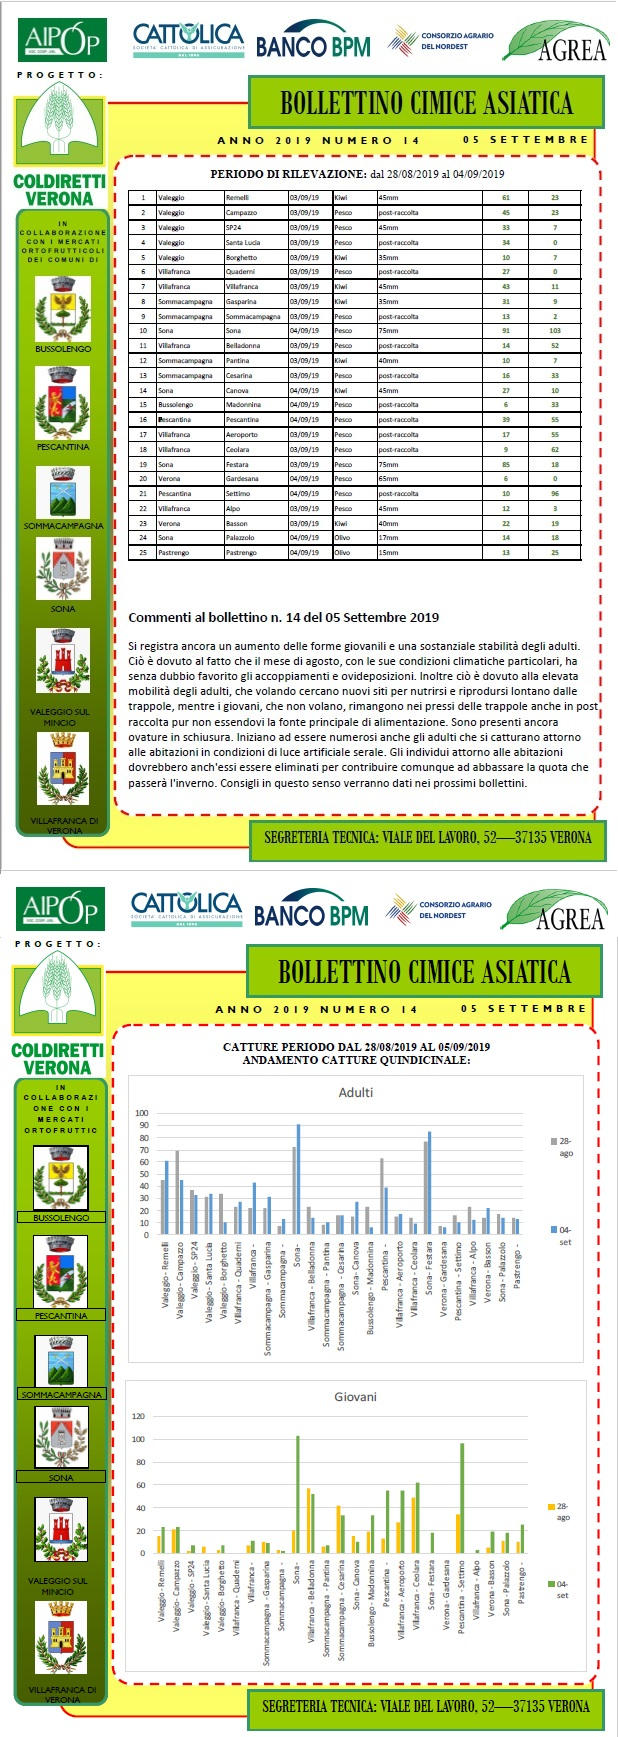 BOLLETTINO CIMICE ASIATICA N. 14 DEL 04/09/2019